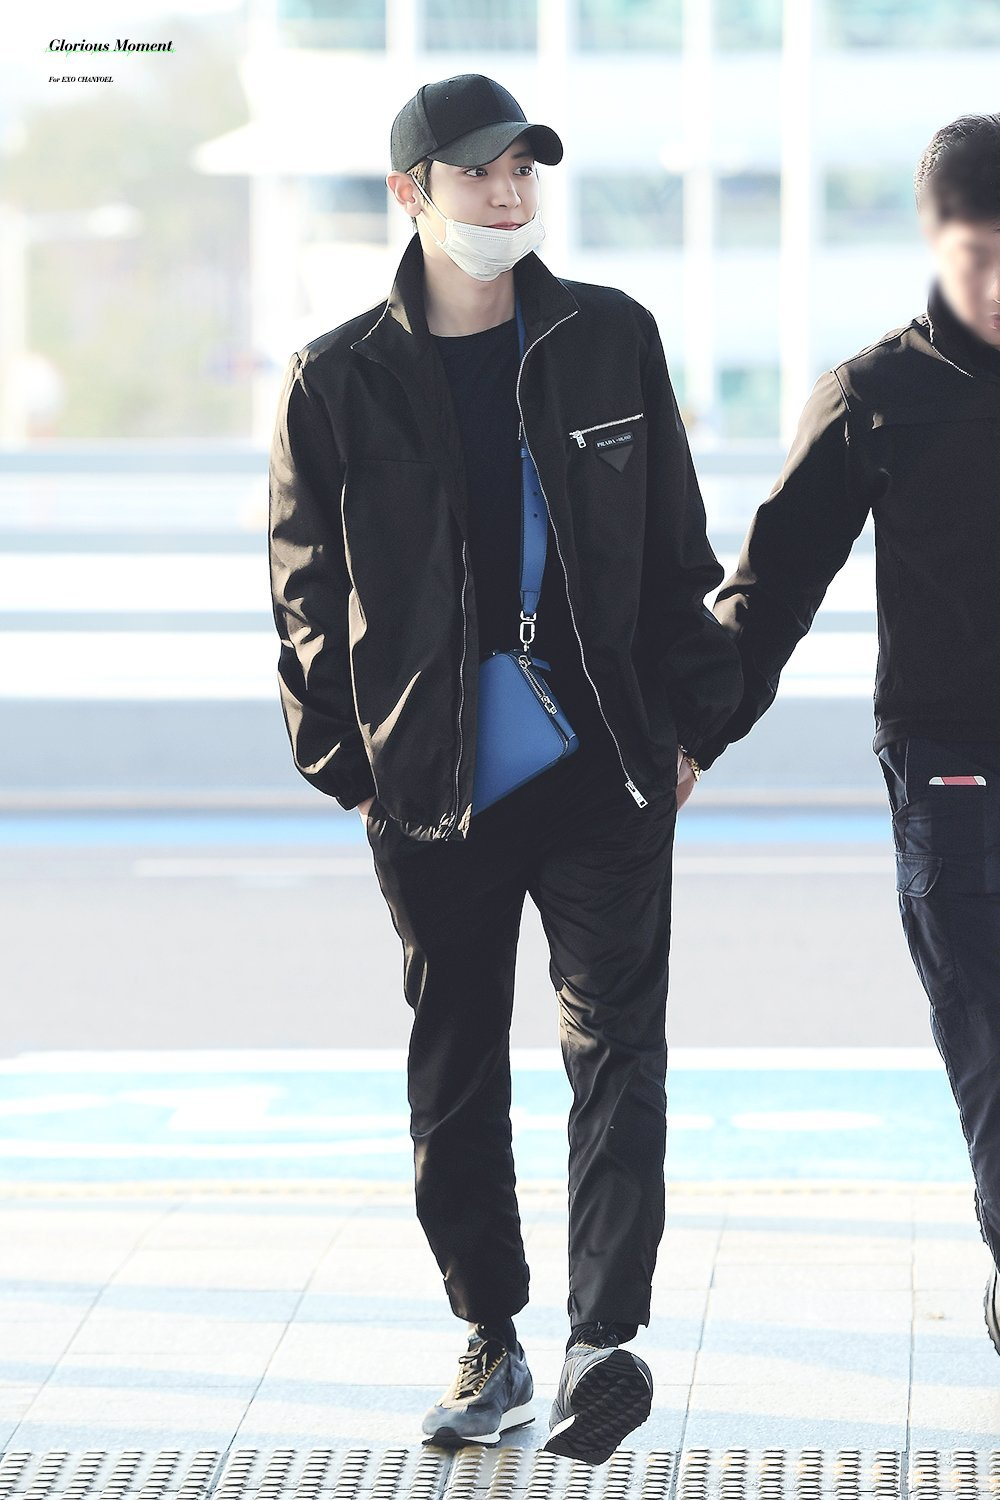 chanyeolairport_6a